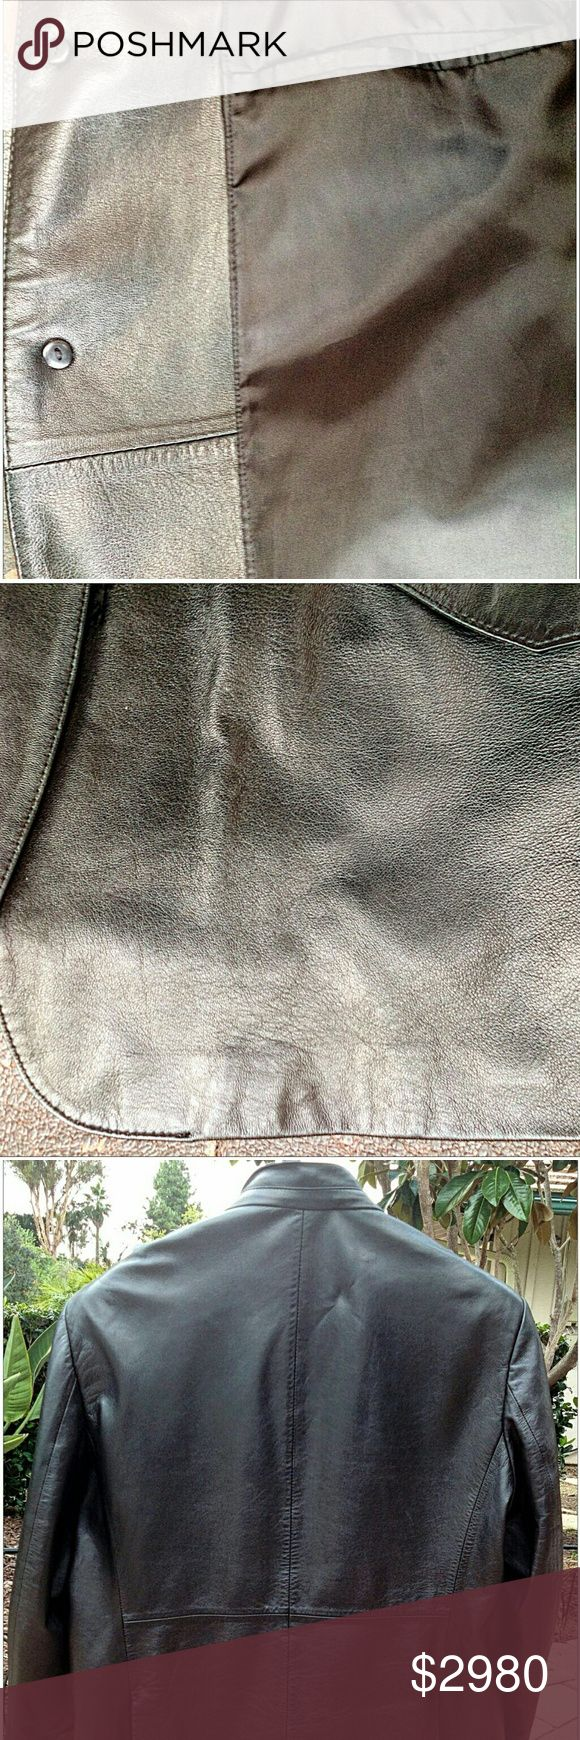 armani Authentic, Original and One-of-a-Kind Giorgio Armani Leather Jacket, with Hidden Button Closure and Mandarin Collar. Exclusive Hand-Crafted Black Jacket made from extremely Soft, Smooth and Comfortable 100% Lambskin Leather. The Chic Jacket is a combination between Classic Motorcycle and Armani Flare. It is rather light for its construction and warm and perfect for Fall or Winter temperatures.  Jacket has Two (2) Front Flap Pockets and Two (2) Concealed Interior Breast Pockets.   This…